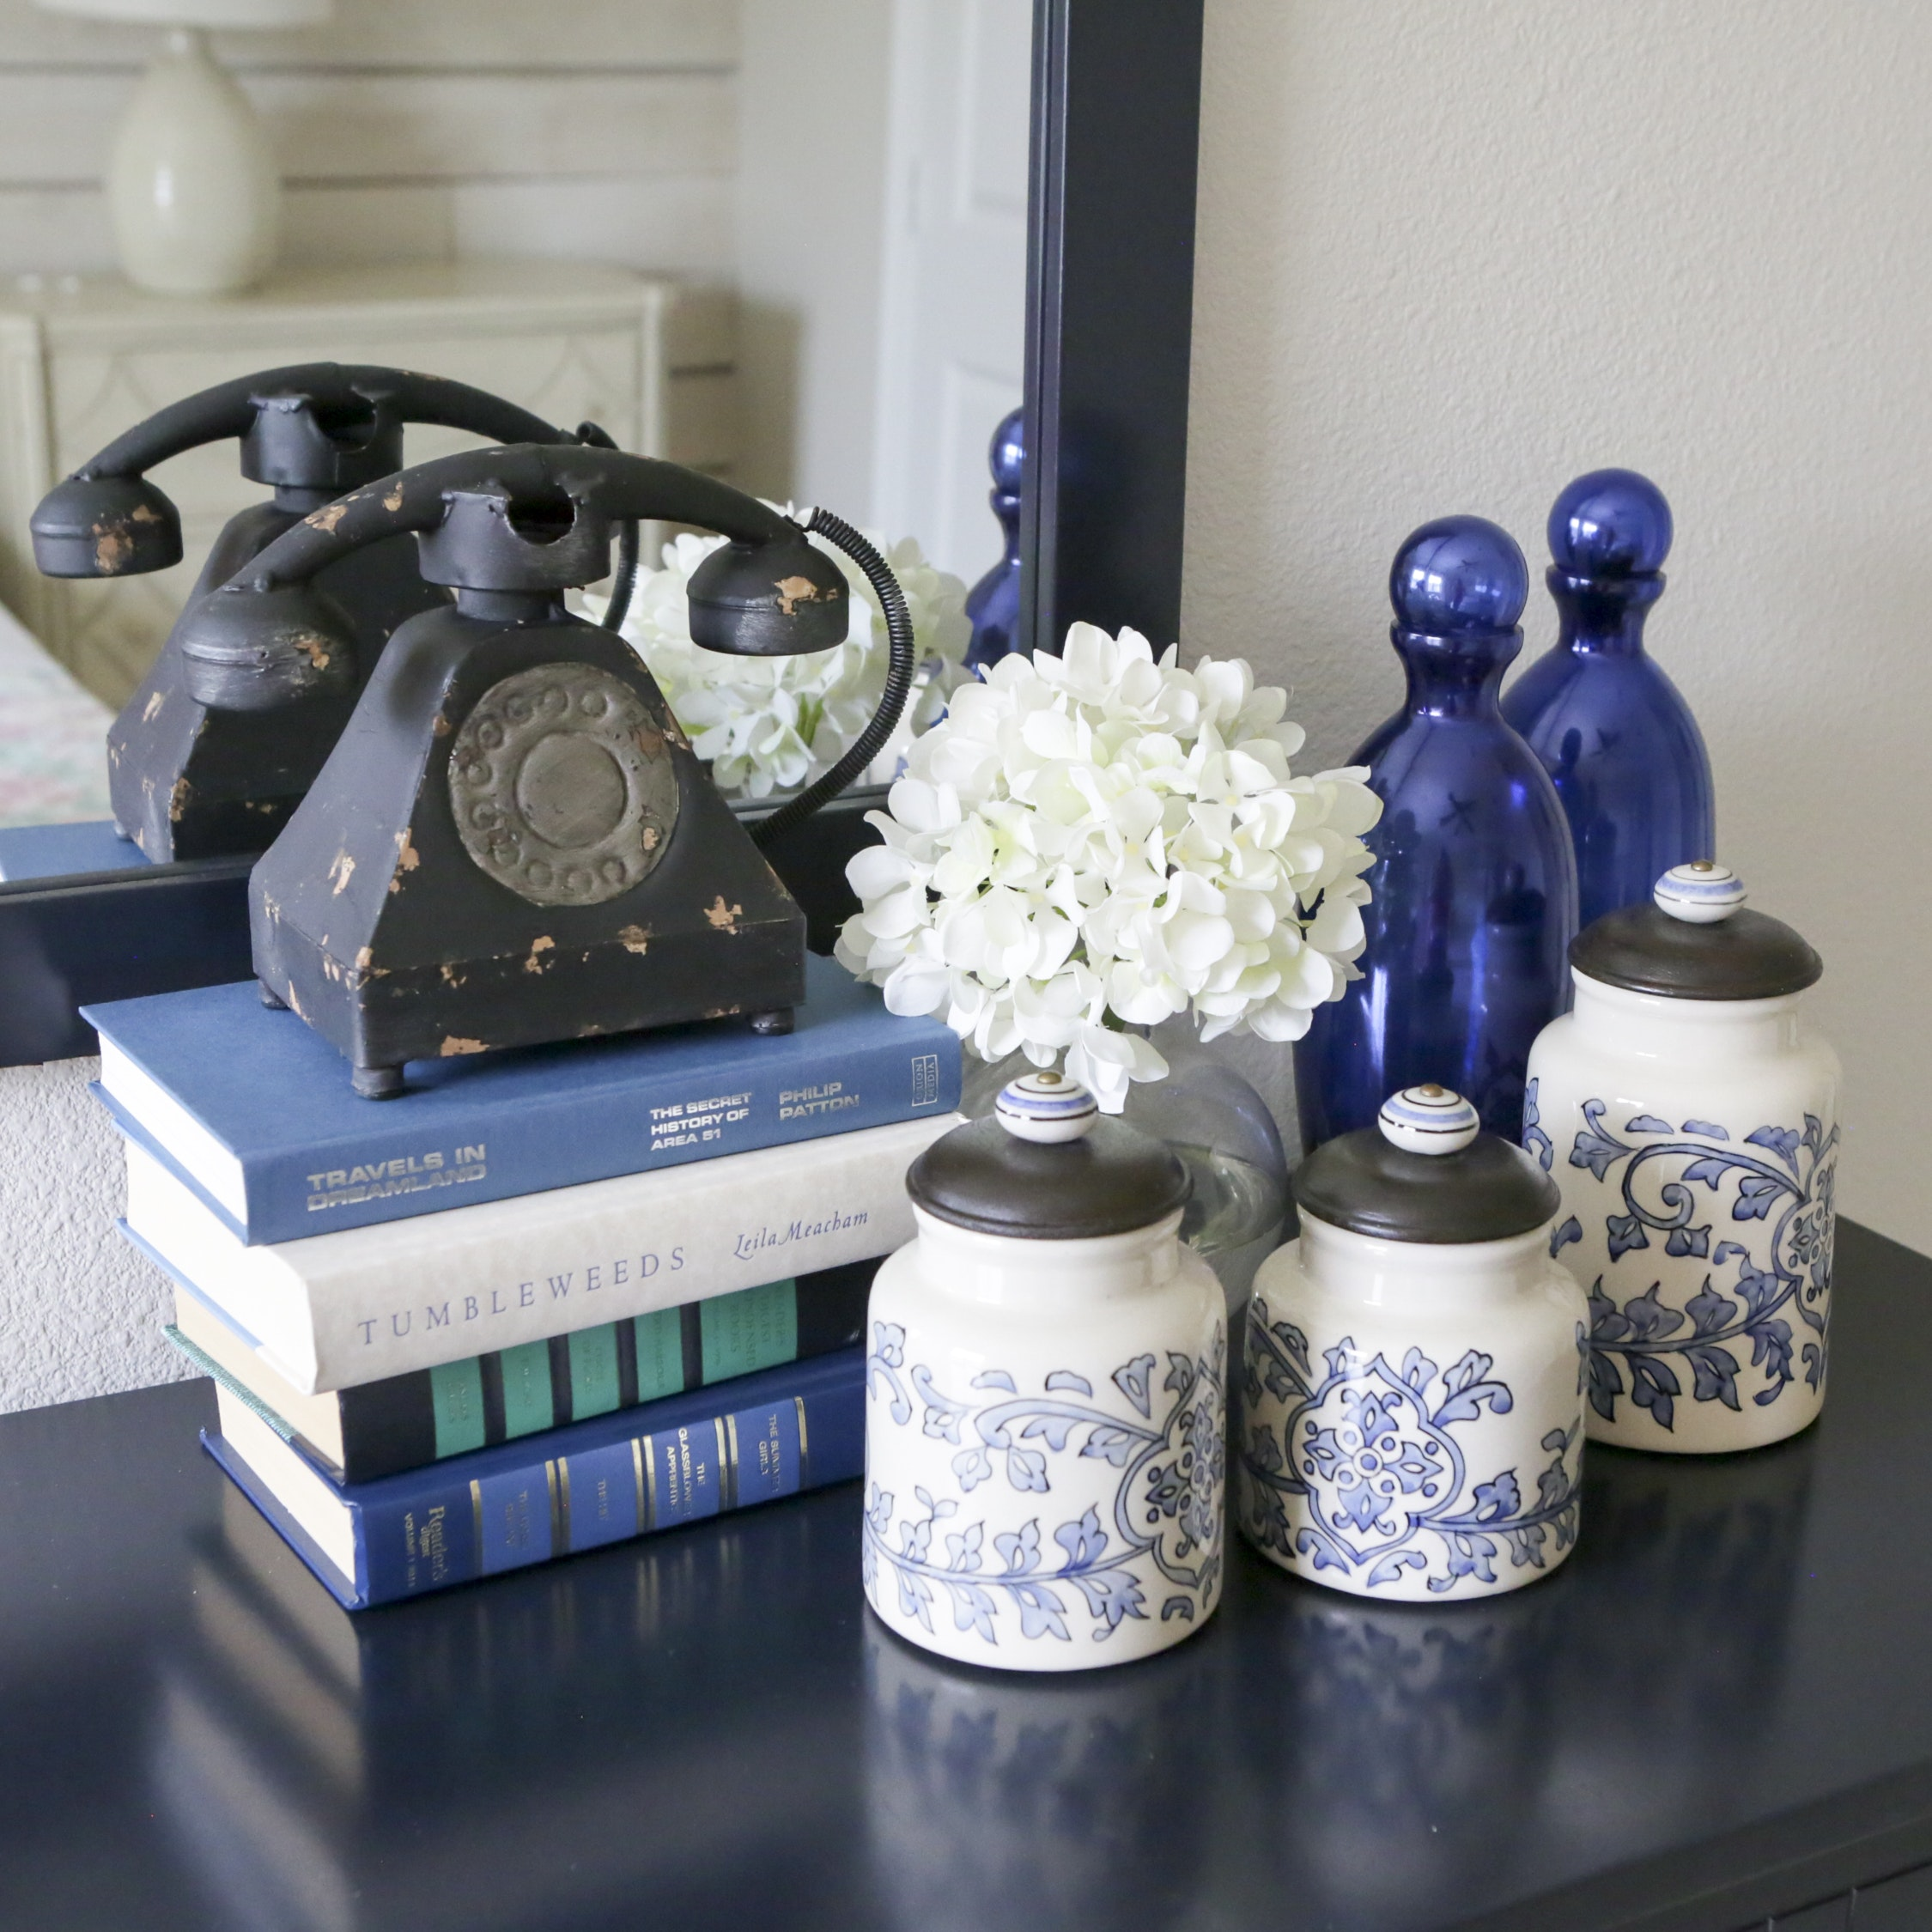 Ceramic Canisters, Blue Glass Bottles, Decorative Books, and Other Decor